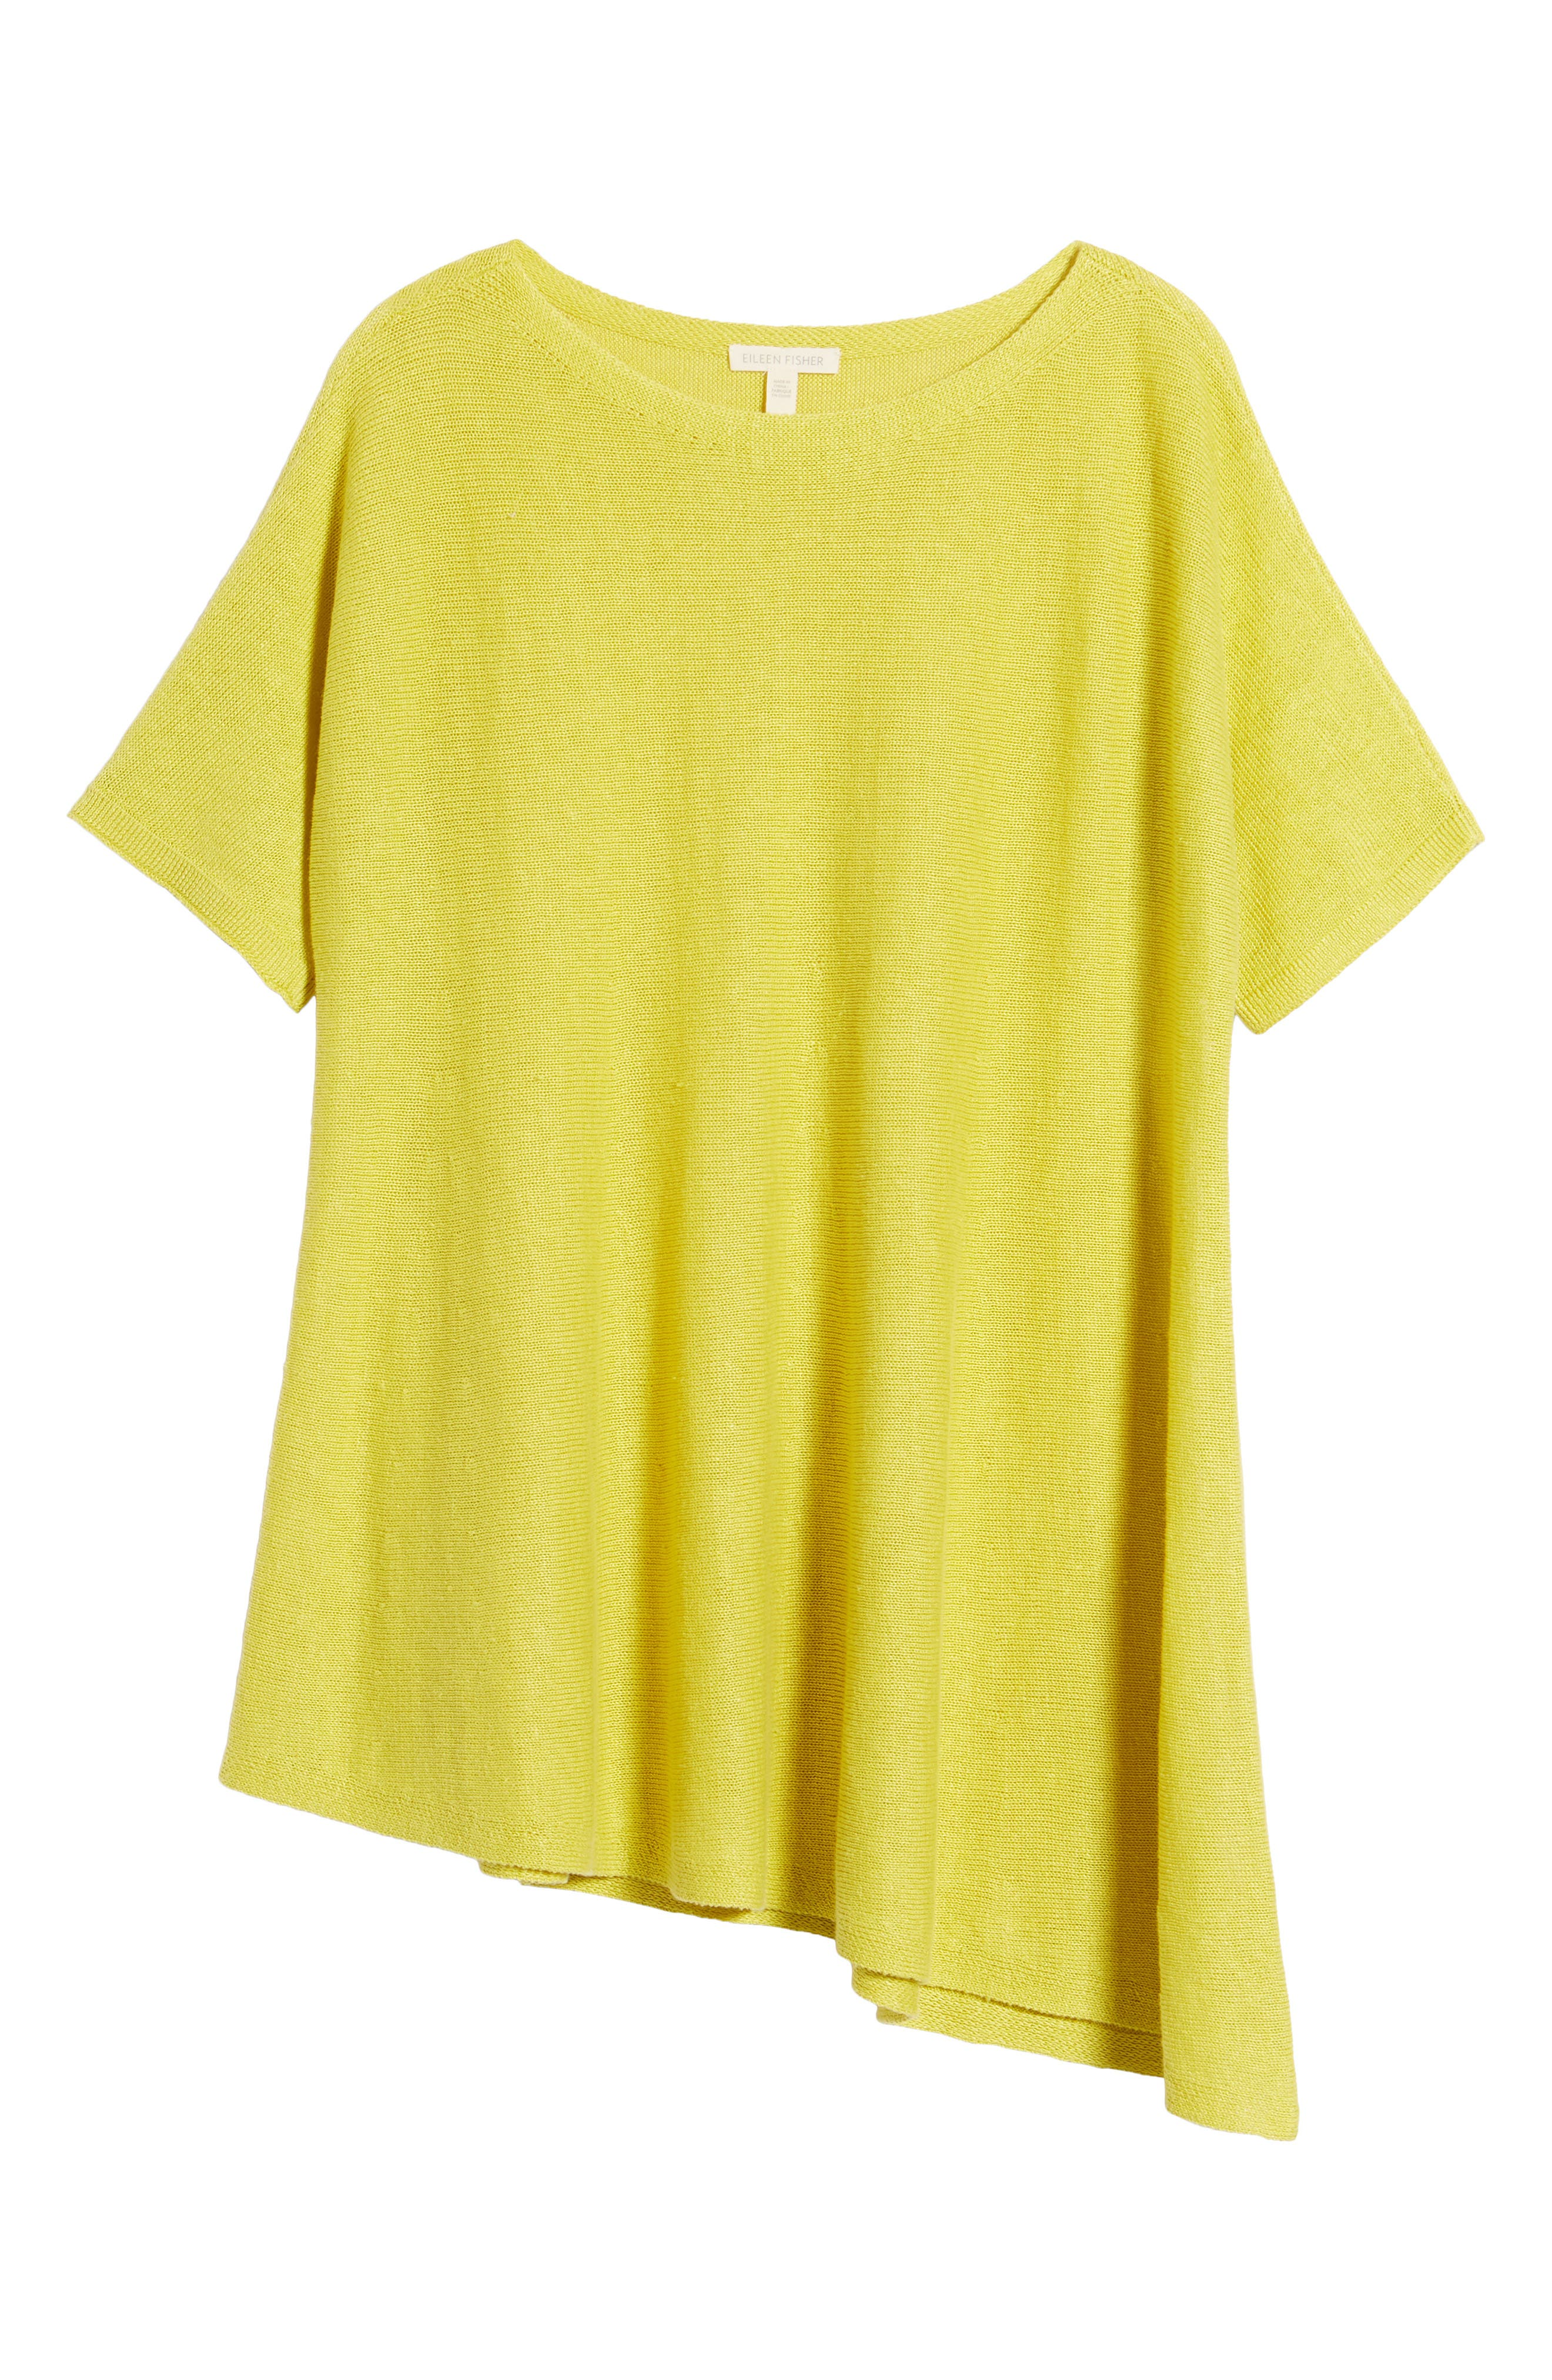 Organic Linen Knit Top,                             Alternate thumbnail 6, color,                             Yarrow